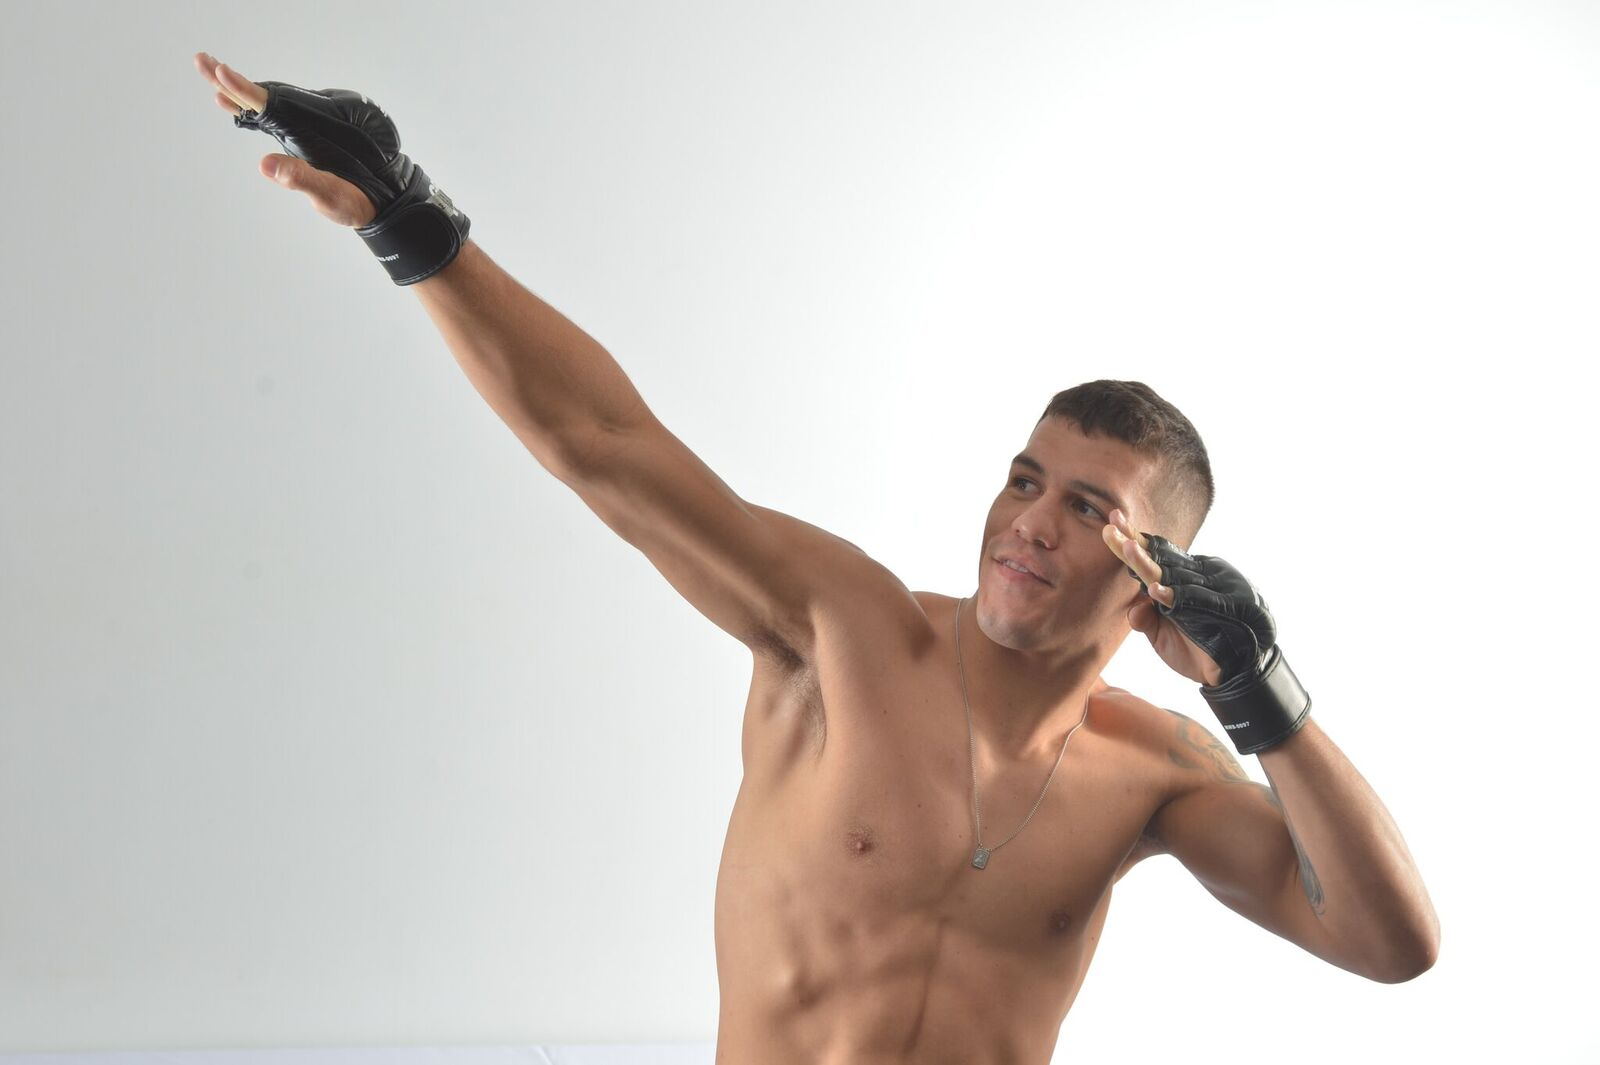 BRAVE 25's Efrain intent on rematching champ Loman: 'I was injured before' -